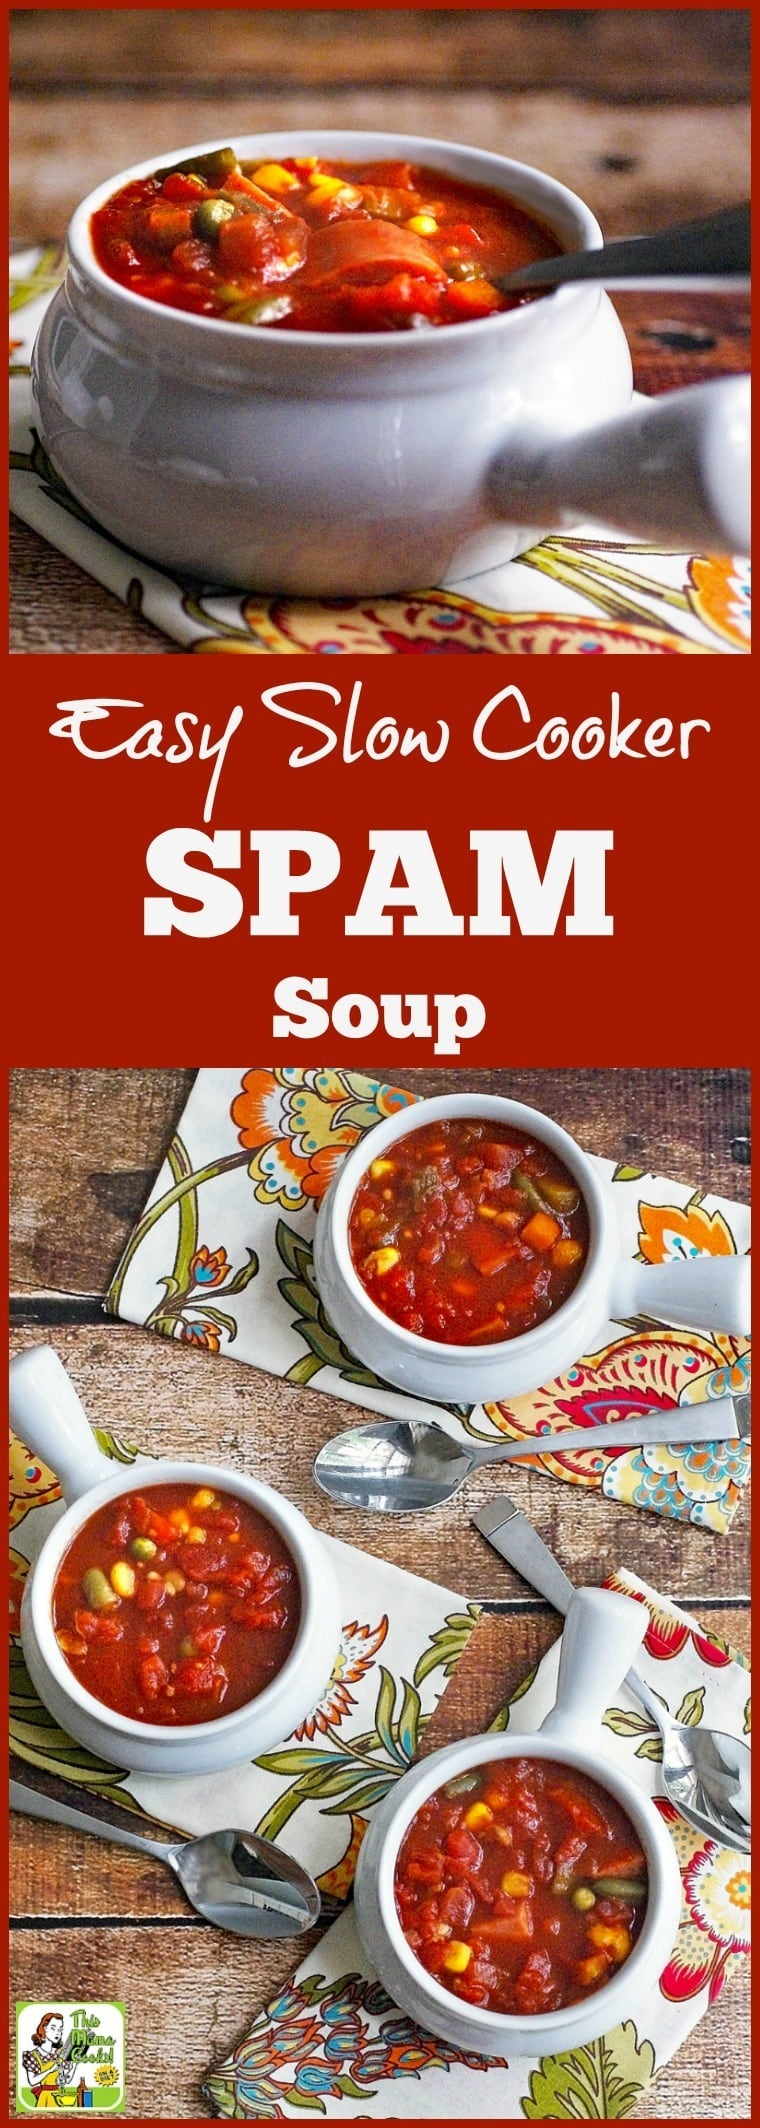 Looking for an easy to make Crock-Pot soup recipe? Learn how to open a few cans to make Easy Slow Cooker SPAM Soup. Click to get this delicous, gluten free, and healthy soup recipe.